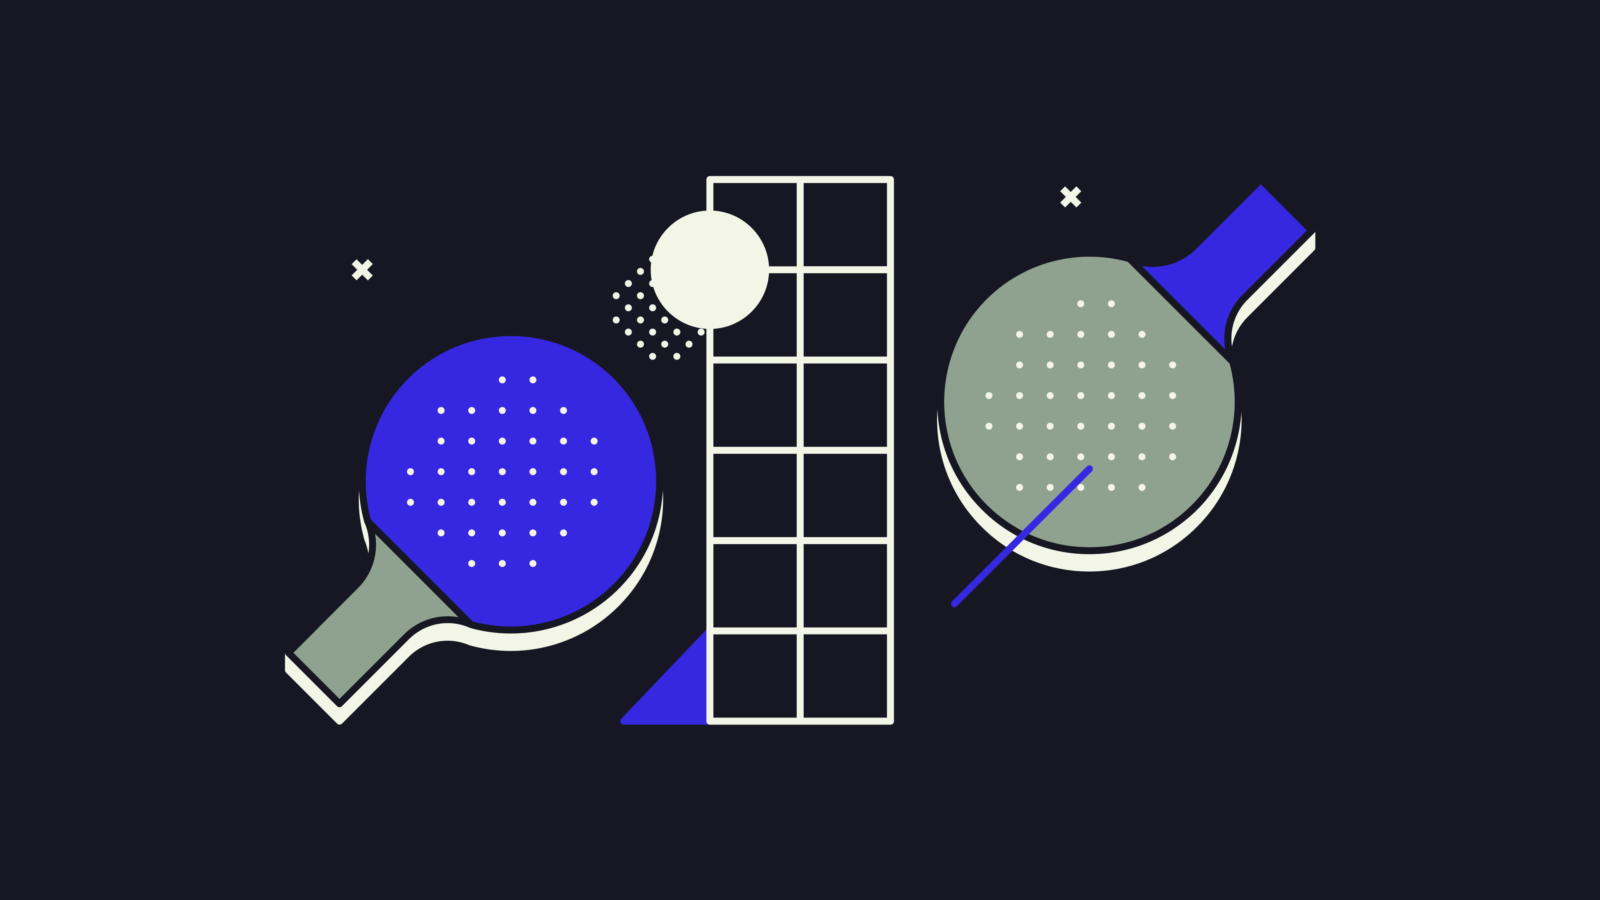 Graphic illustration of ping pong bats